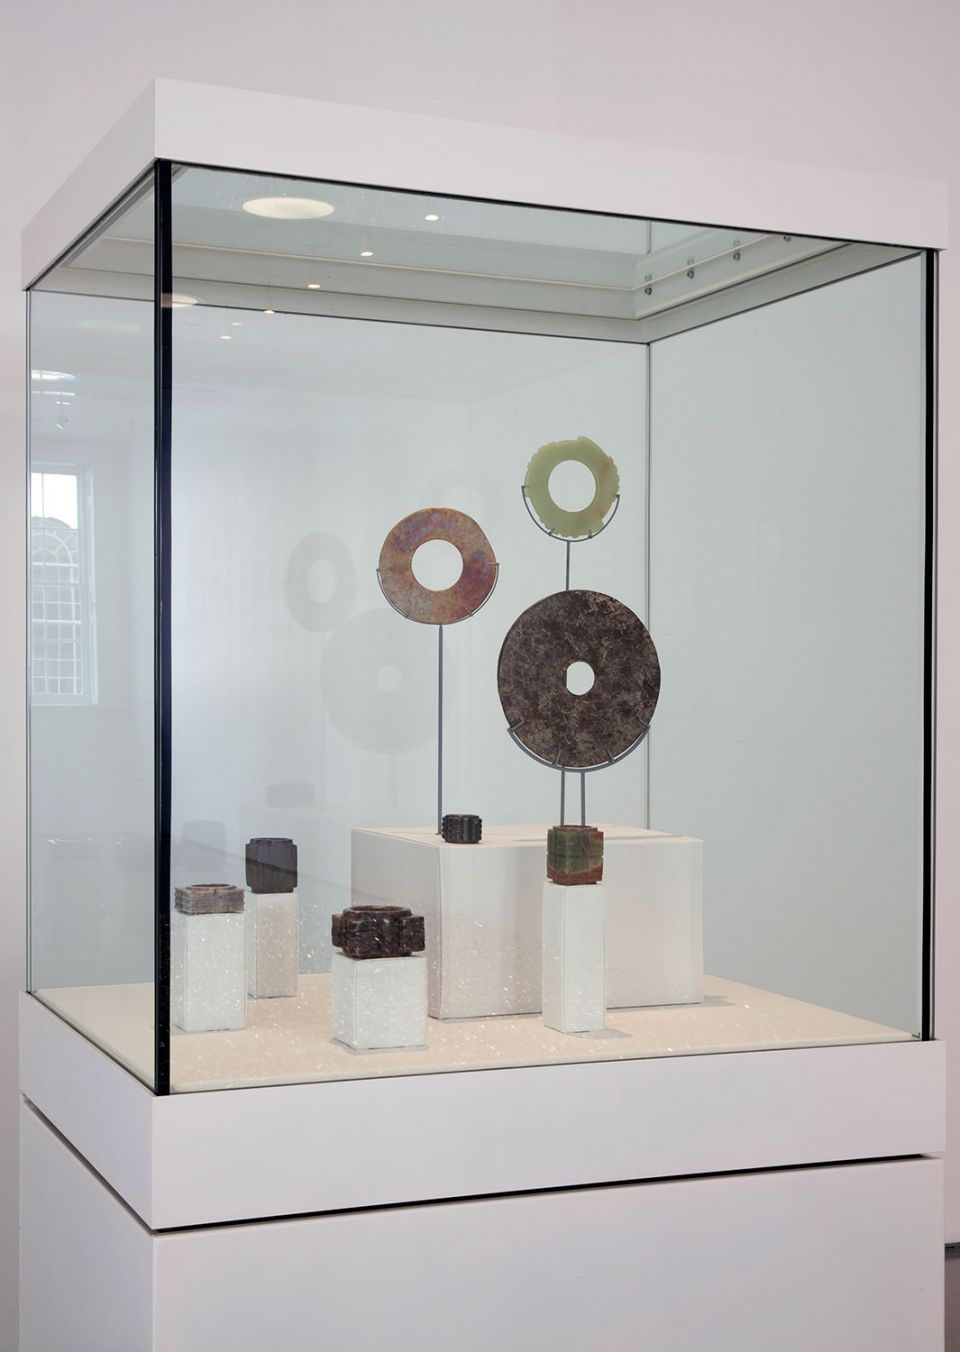 Installation view of Gallery 1, showing collection of jade bi and cong